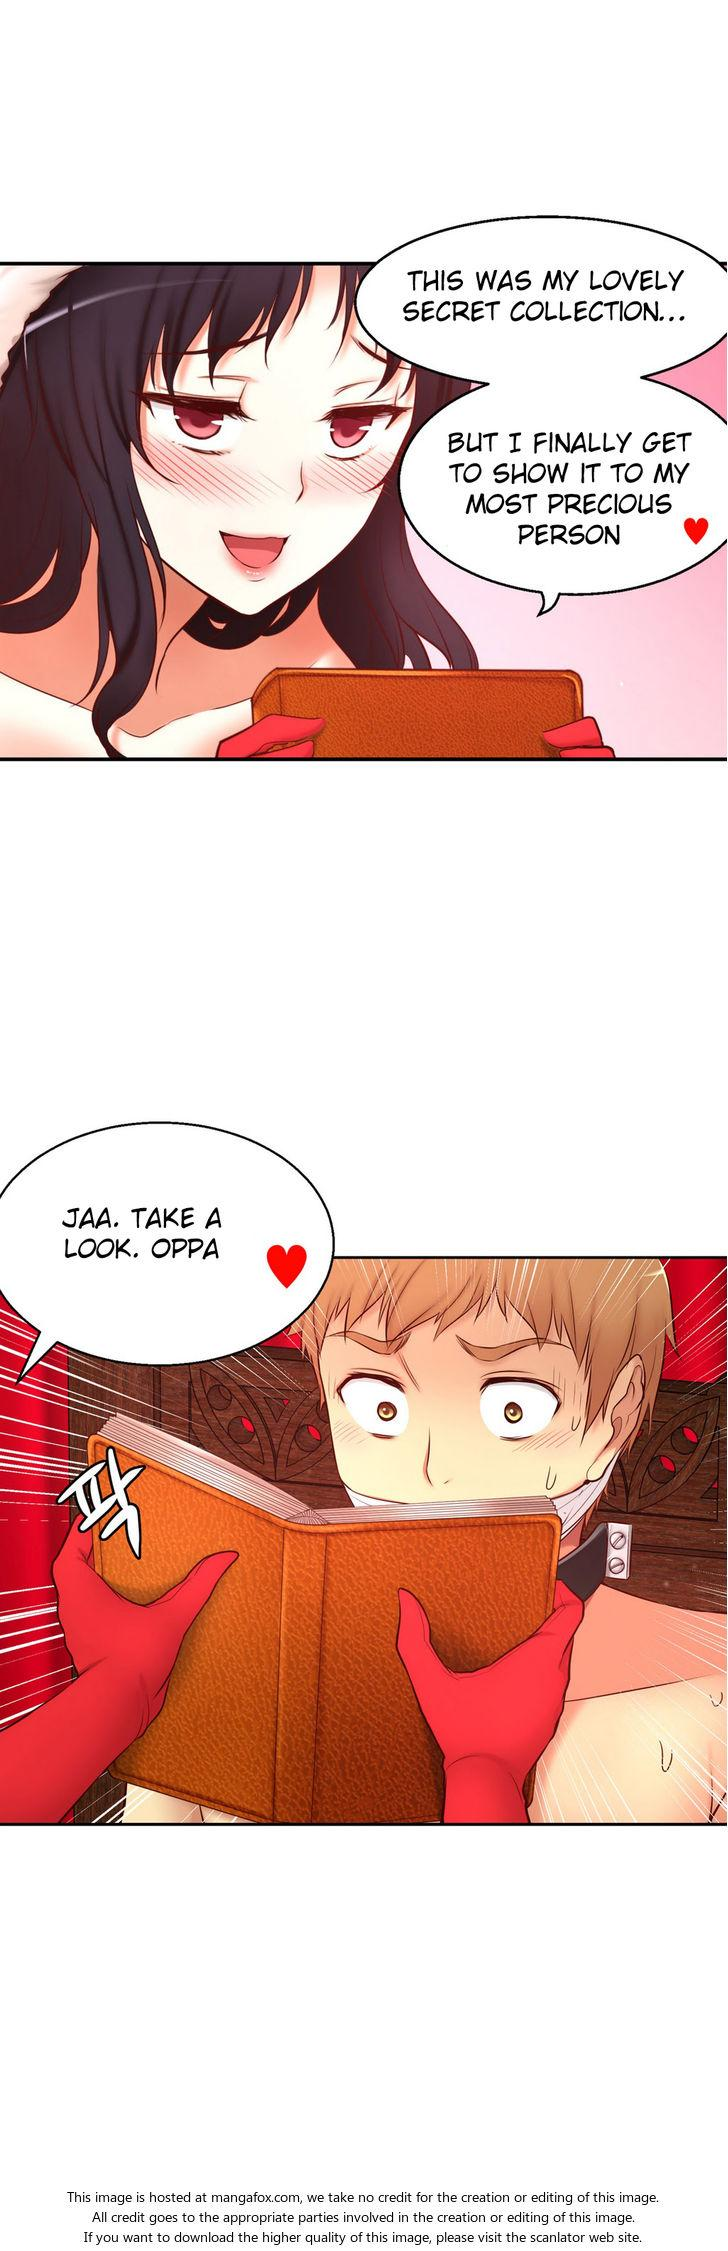 [Donggul Gom] She is Young (English) Part 1/2 1701